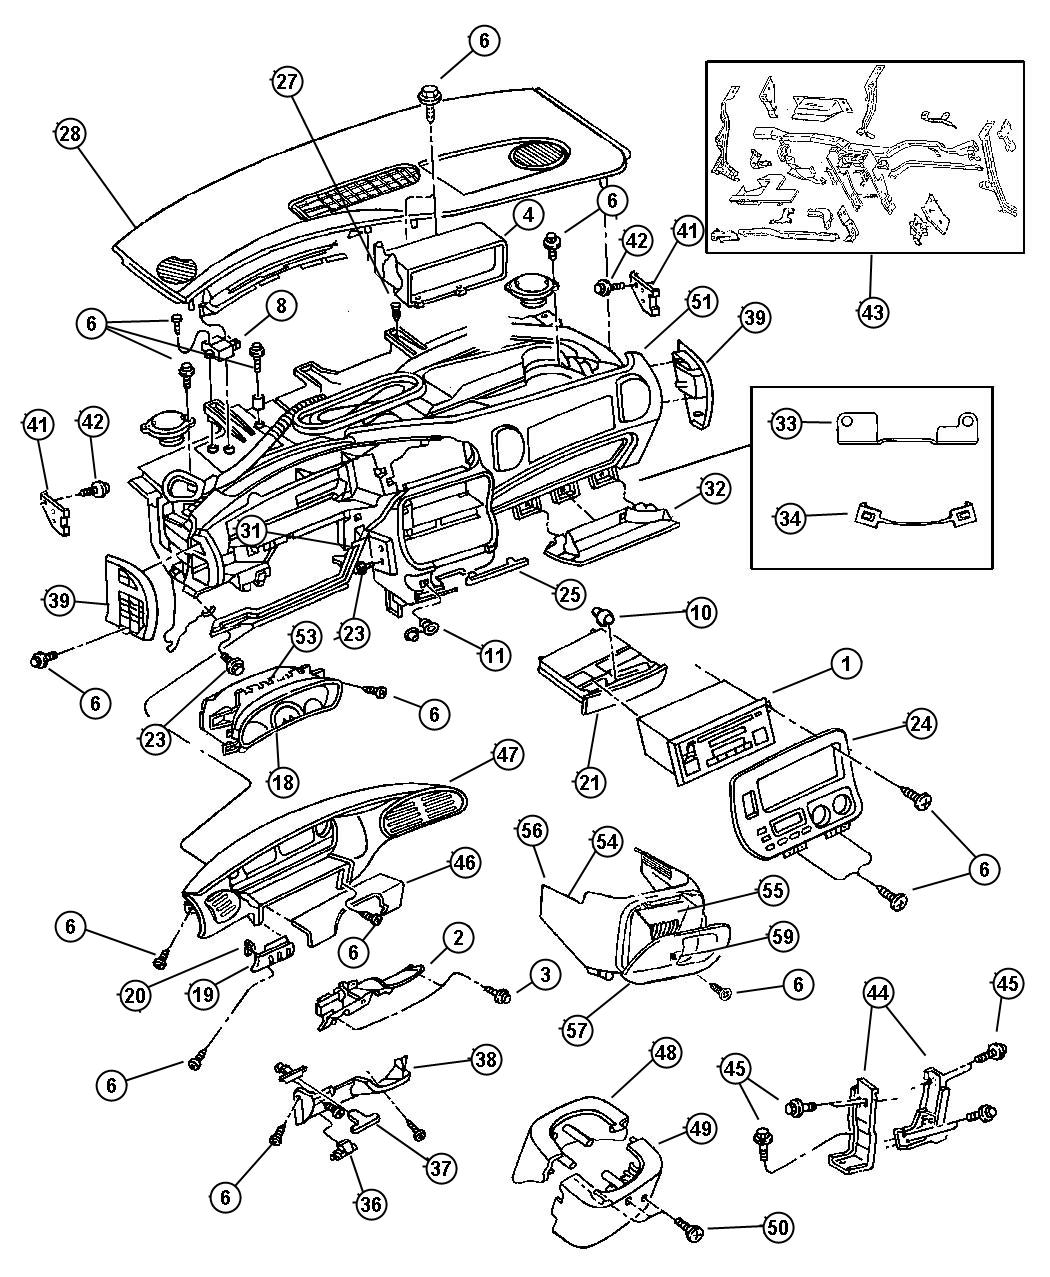 hight resolution of fuse box for chrysler voyager